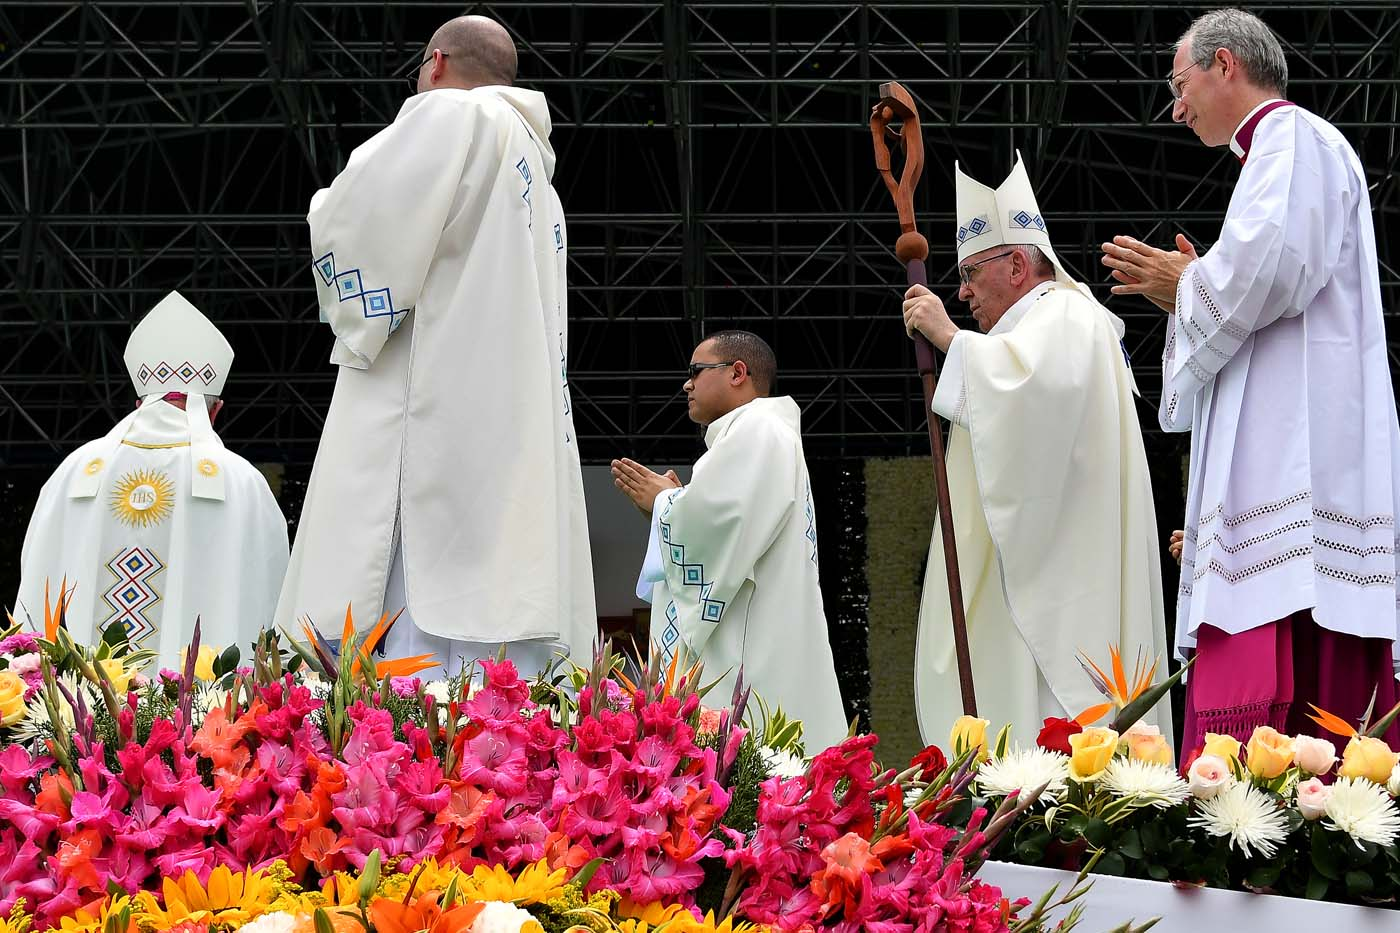 Pope Francis (2-R) walks to the altar to give mass at the Enrique Olaya Herrera airport in Medellin, Colombia, on September 9, 2017. Pope Francis visits the Colombian city of Medellin, former stronghold of the late drug baron Pablo Escobar, on the fourth day of a papal tour to promote peace. / AFP PHOTO / Alberto PIZZOLI